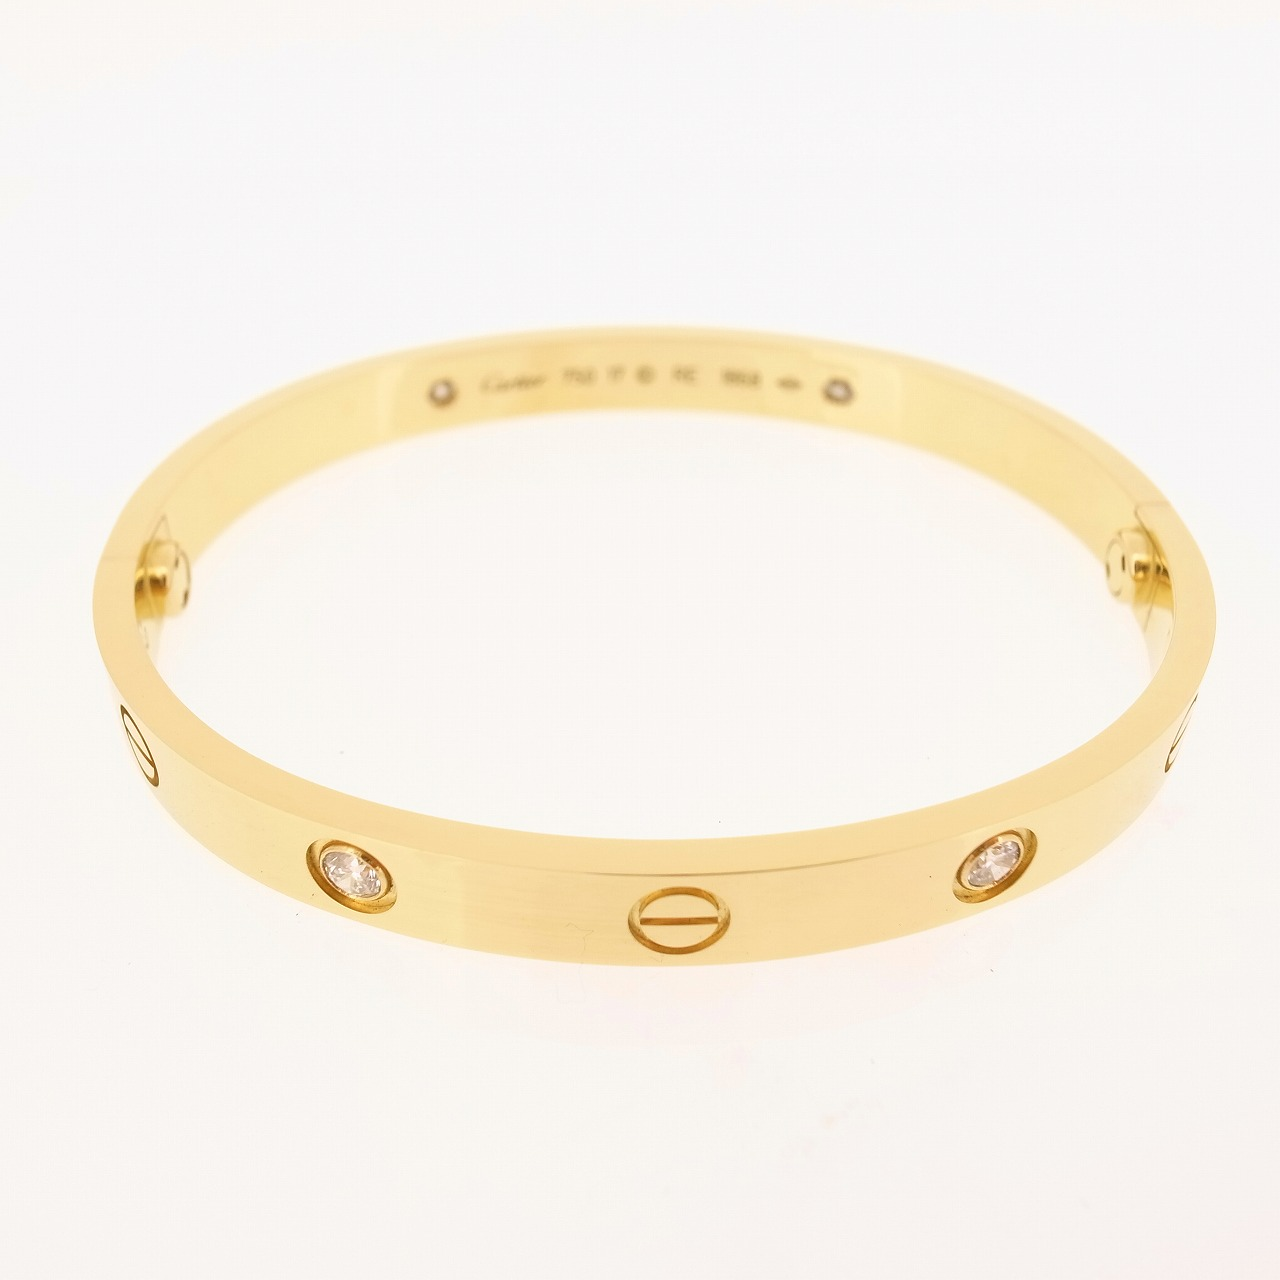 CARTIER 18K YELLOW GOLD 4 DIAMONDS LOVE BRACELET 17 WITH ...